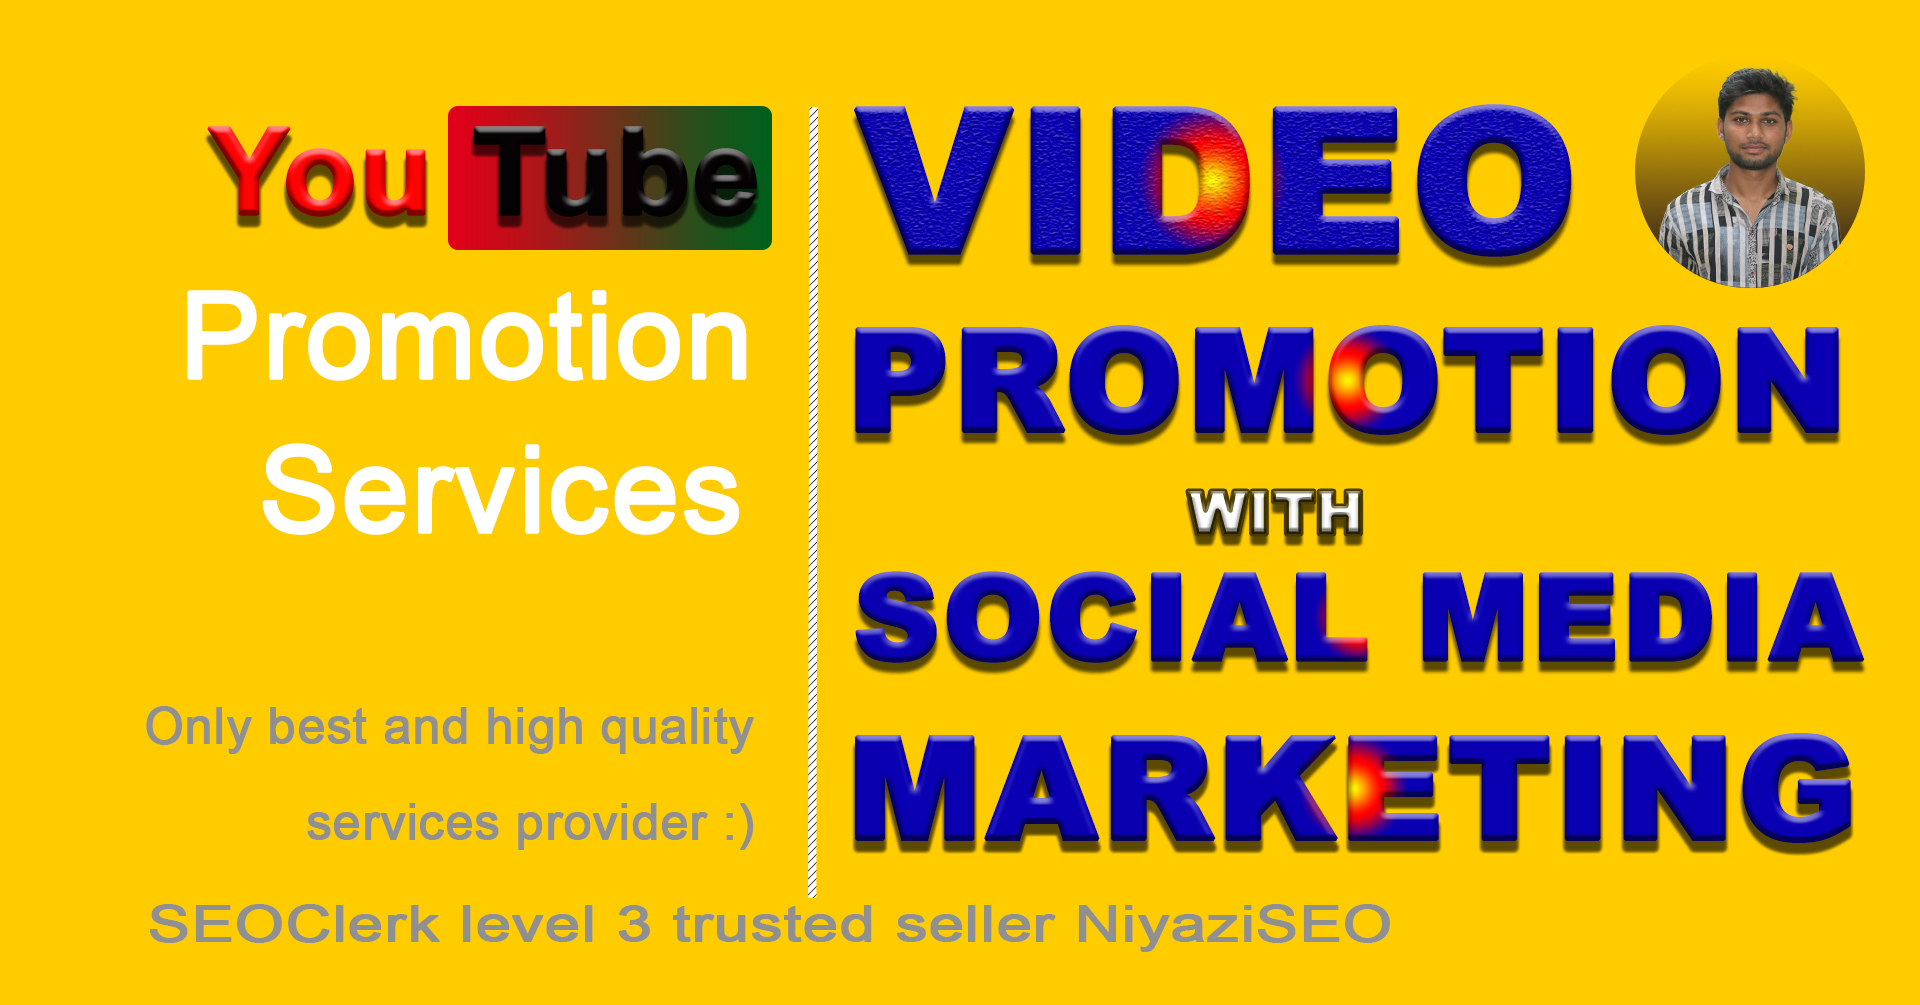 YouTube Video Promotion with Social Media Marketing